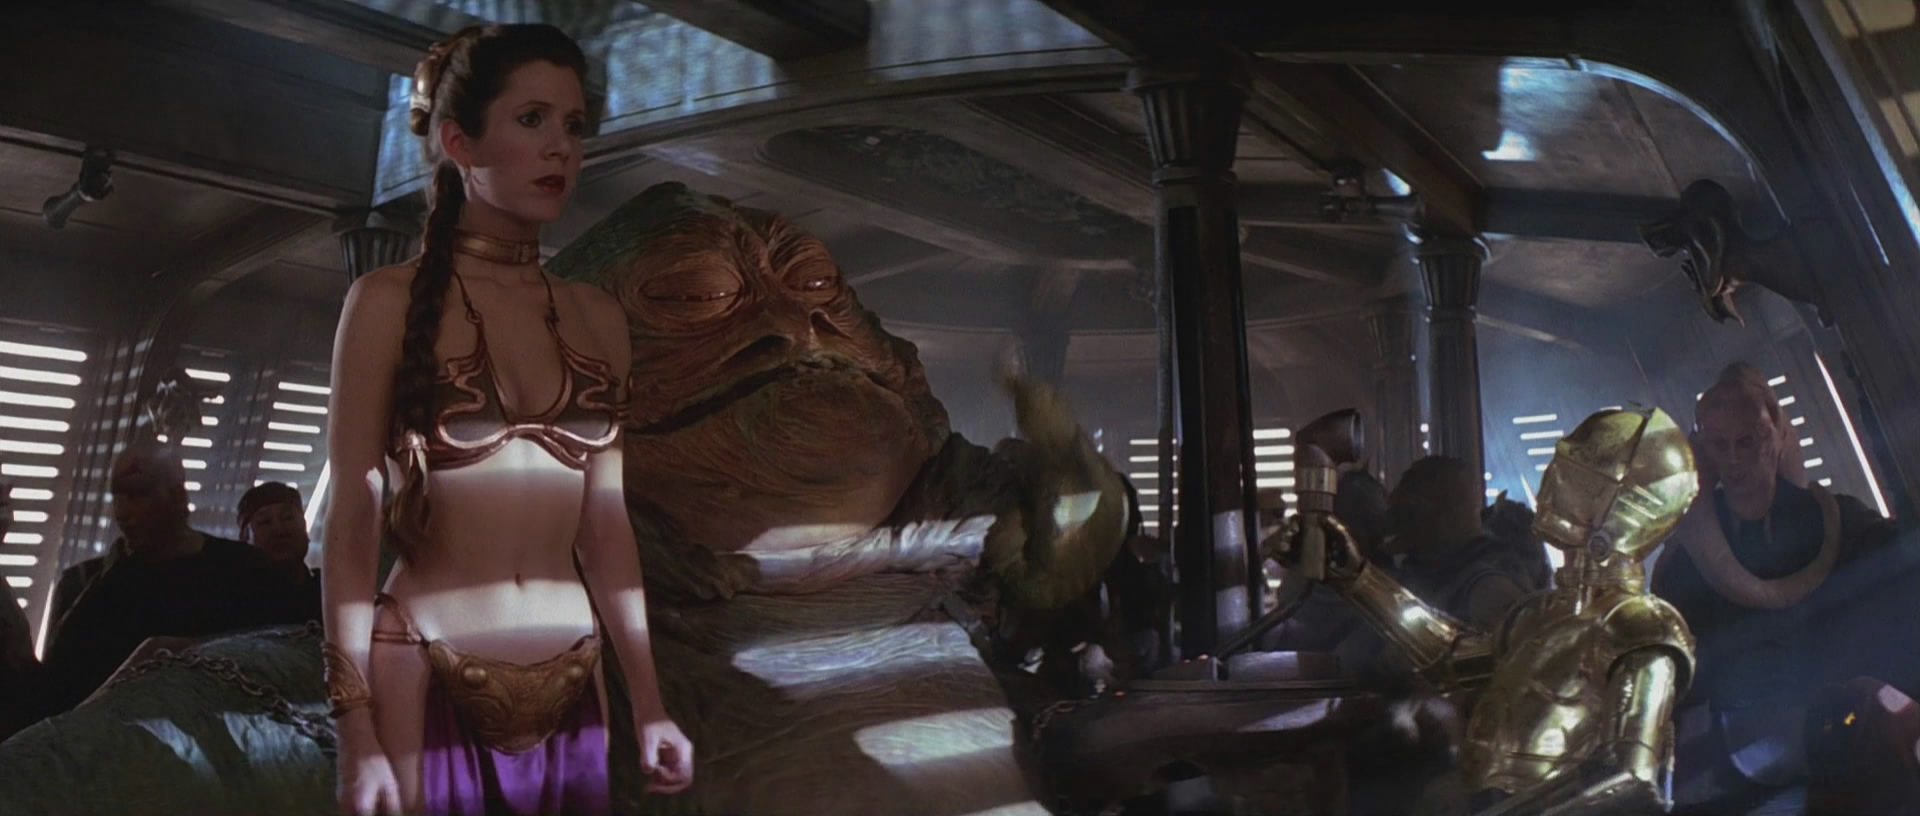 Return Of The Jedi Leia And Jabba The Hutt